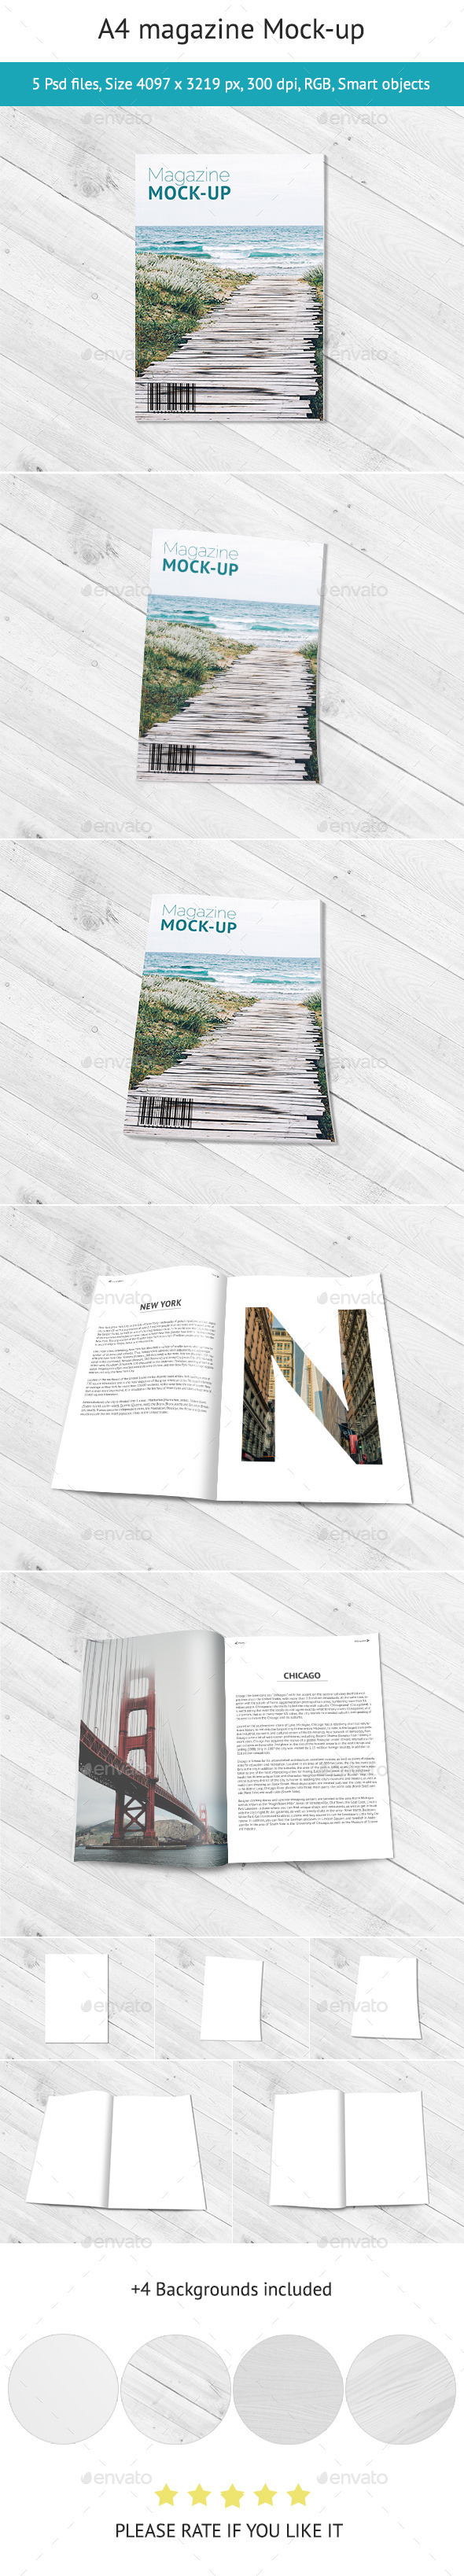 GraphicRiver A4 Magazine Mock-up 11099181